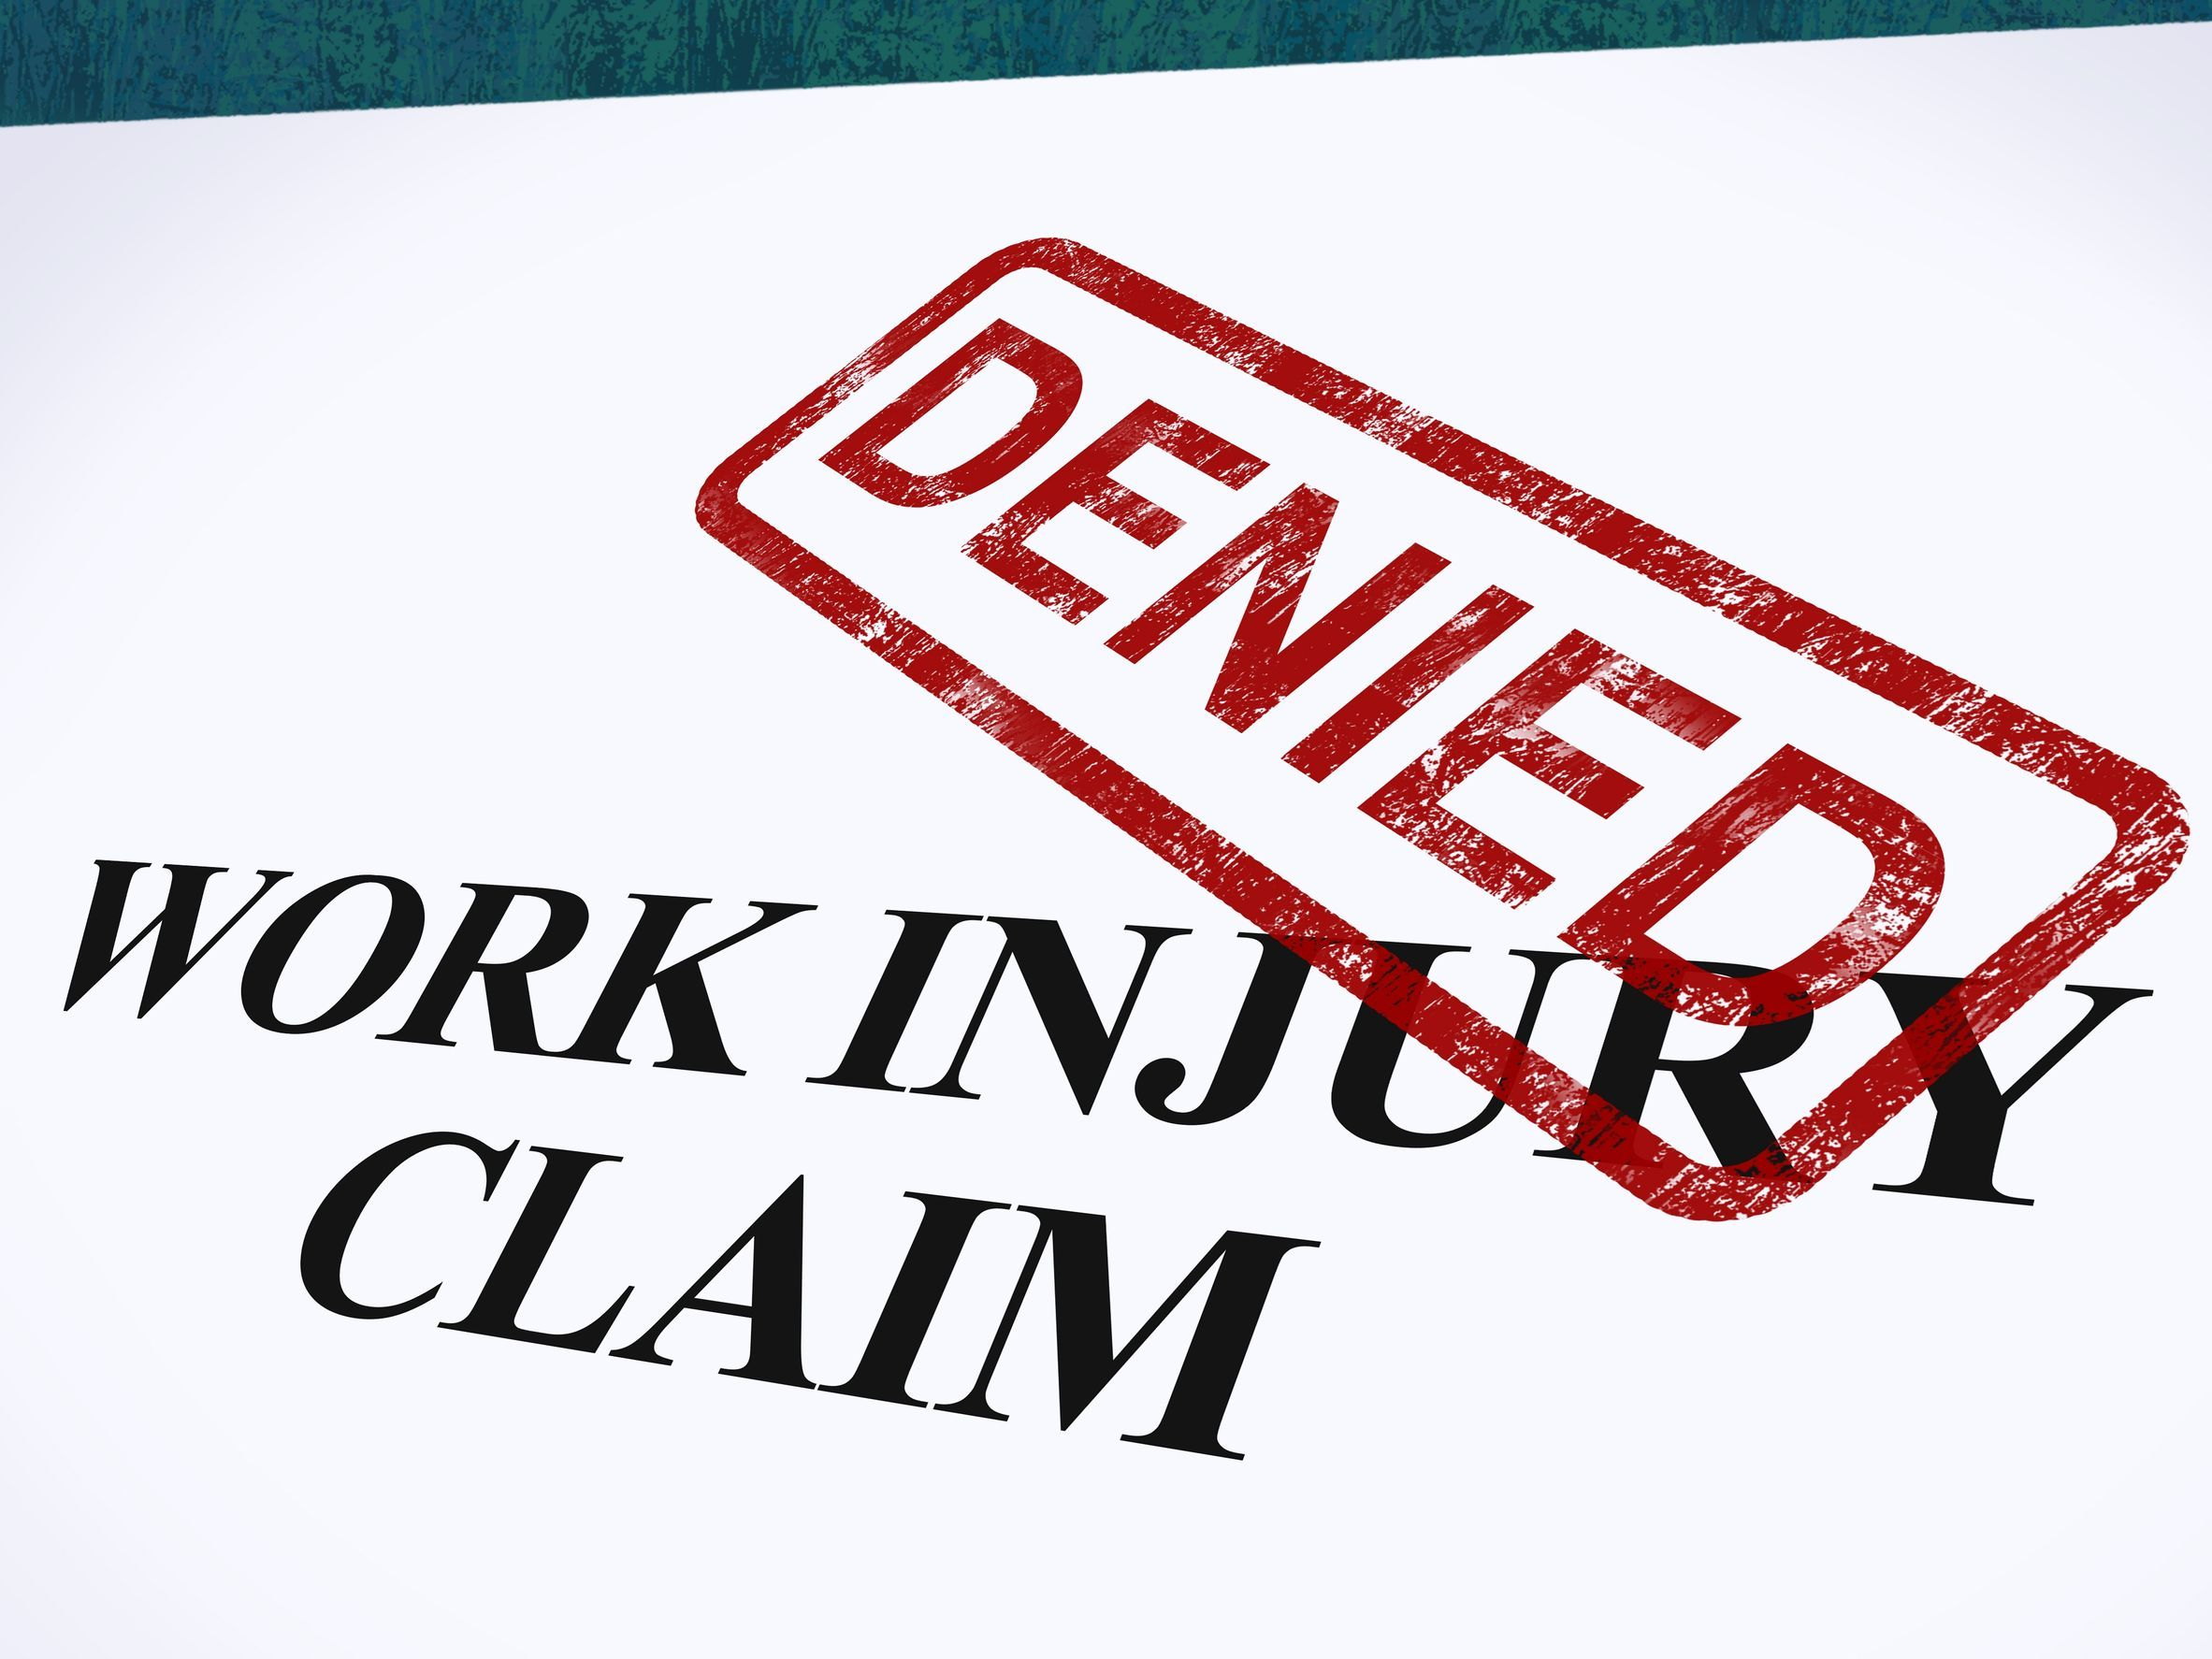 Independent Contractor or Employee Denied Work Injury